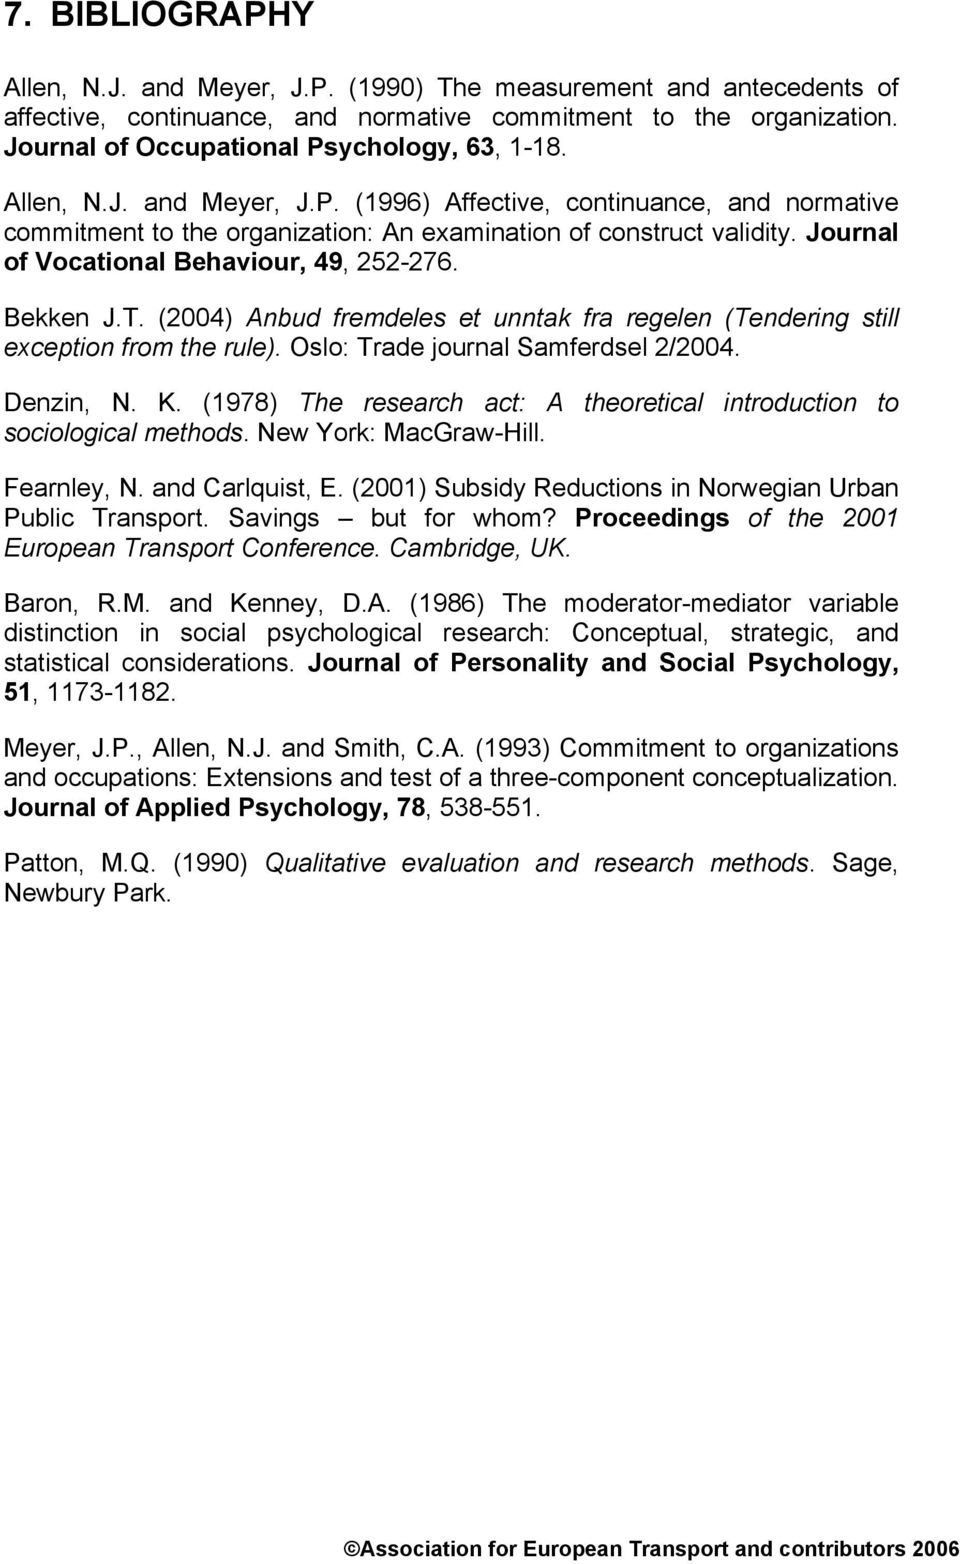 allen meyer commitment to organizations and occupations extension and test of a three component conc Meyer, j p, & allen, n j (1991) a three-component conceptualization of commitment to organizations and occupations: extension and test of a three-component.